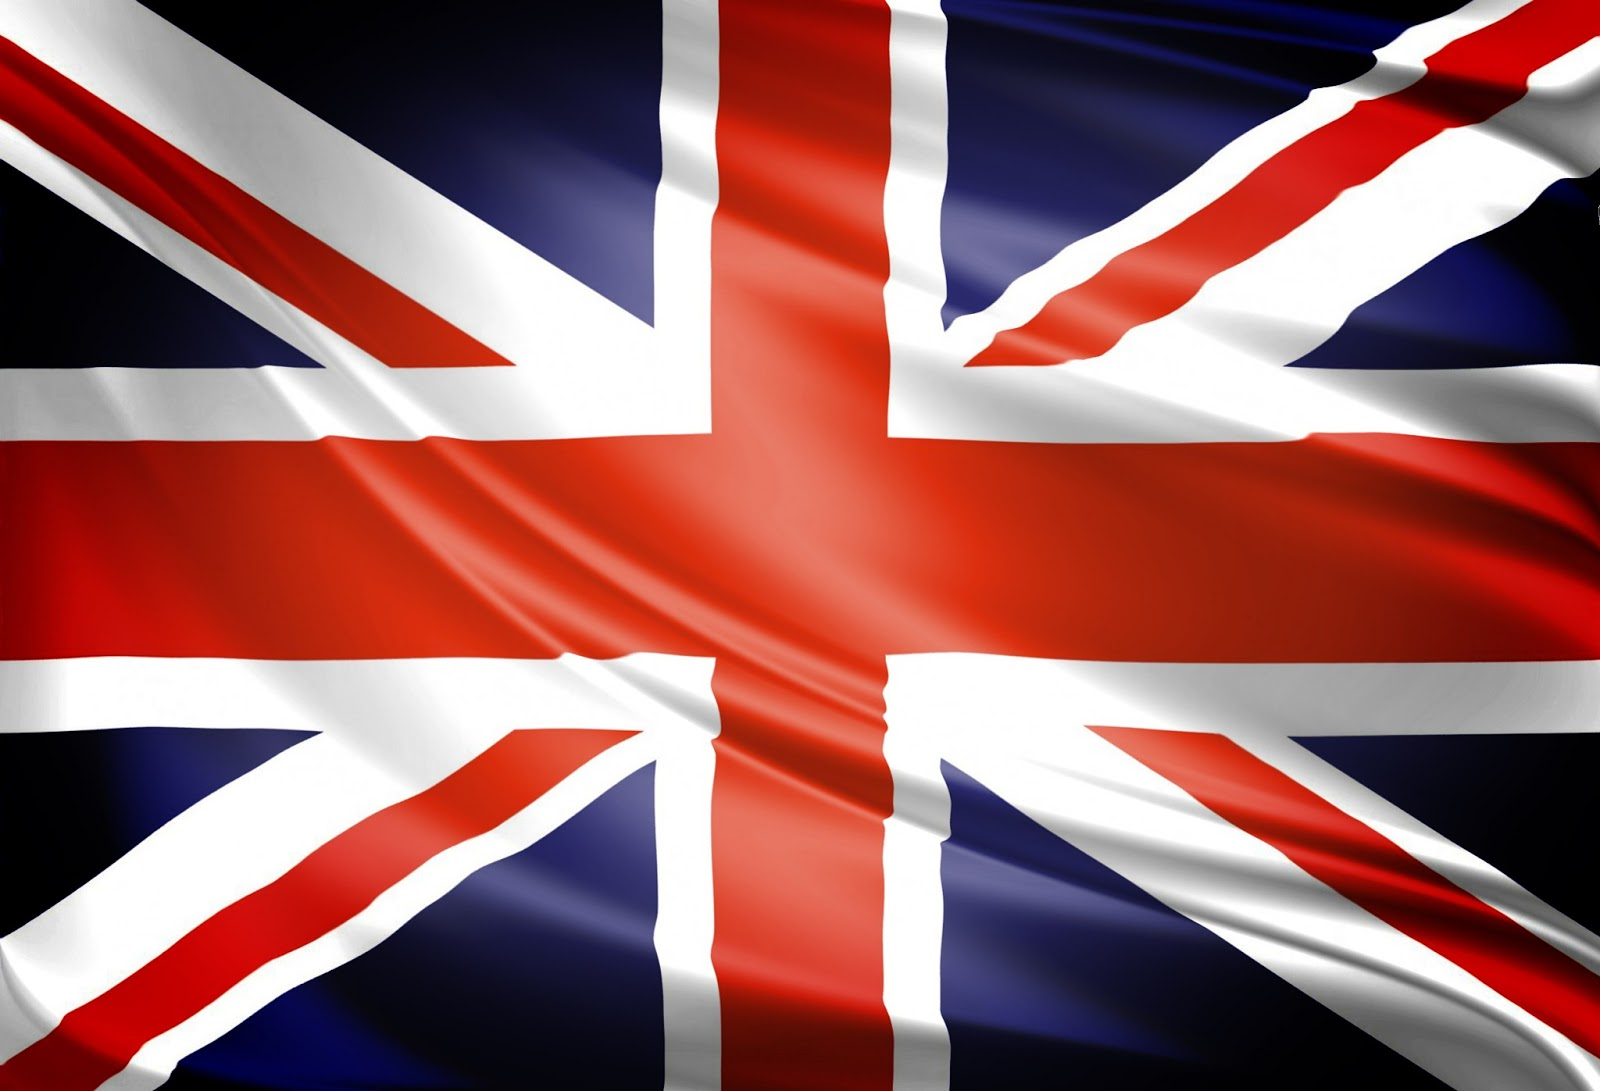 britain flag HQ wallpapers download Fine HD Wallpapers 1600x1091